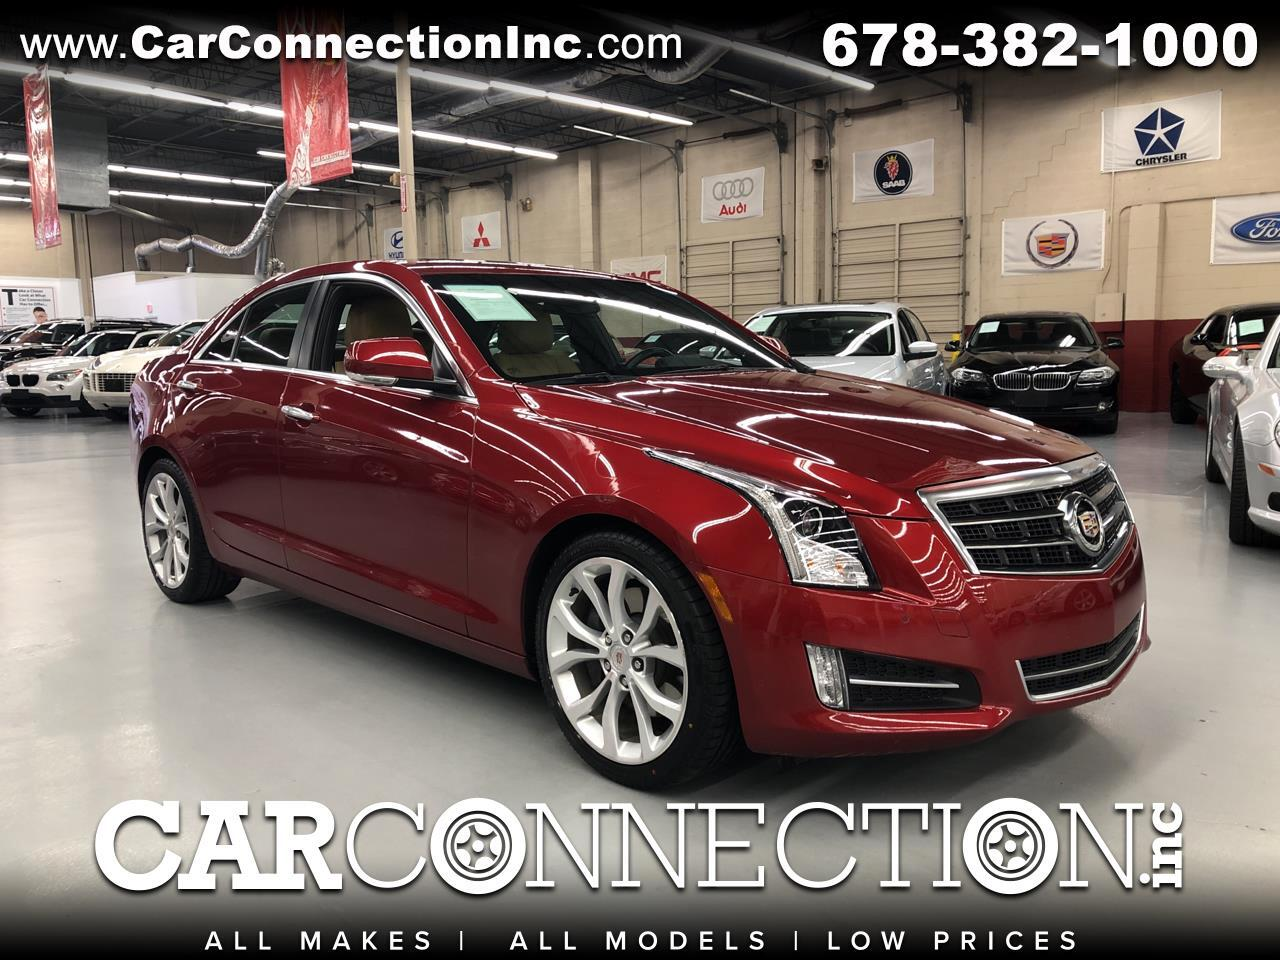 2014 Cadillac ATS Performance